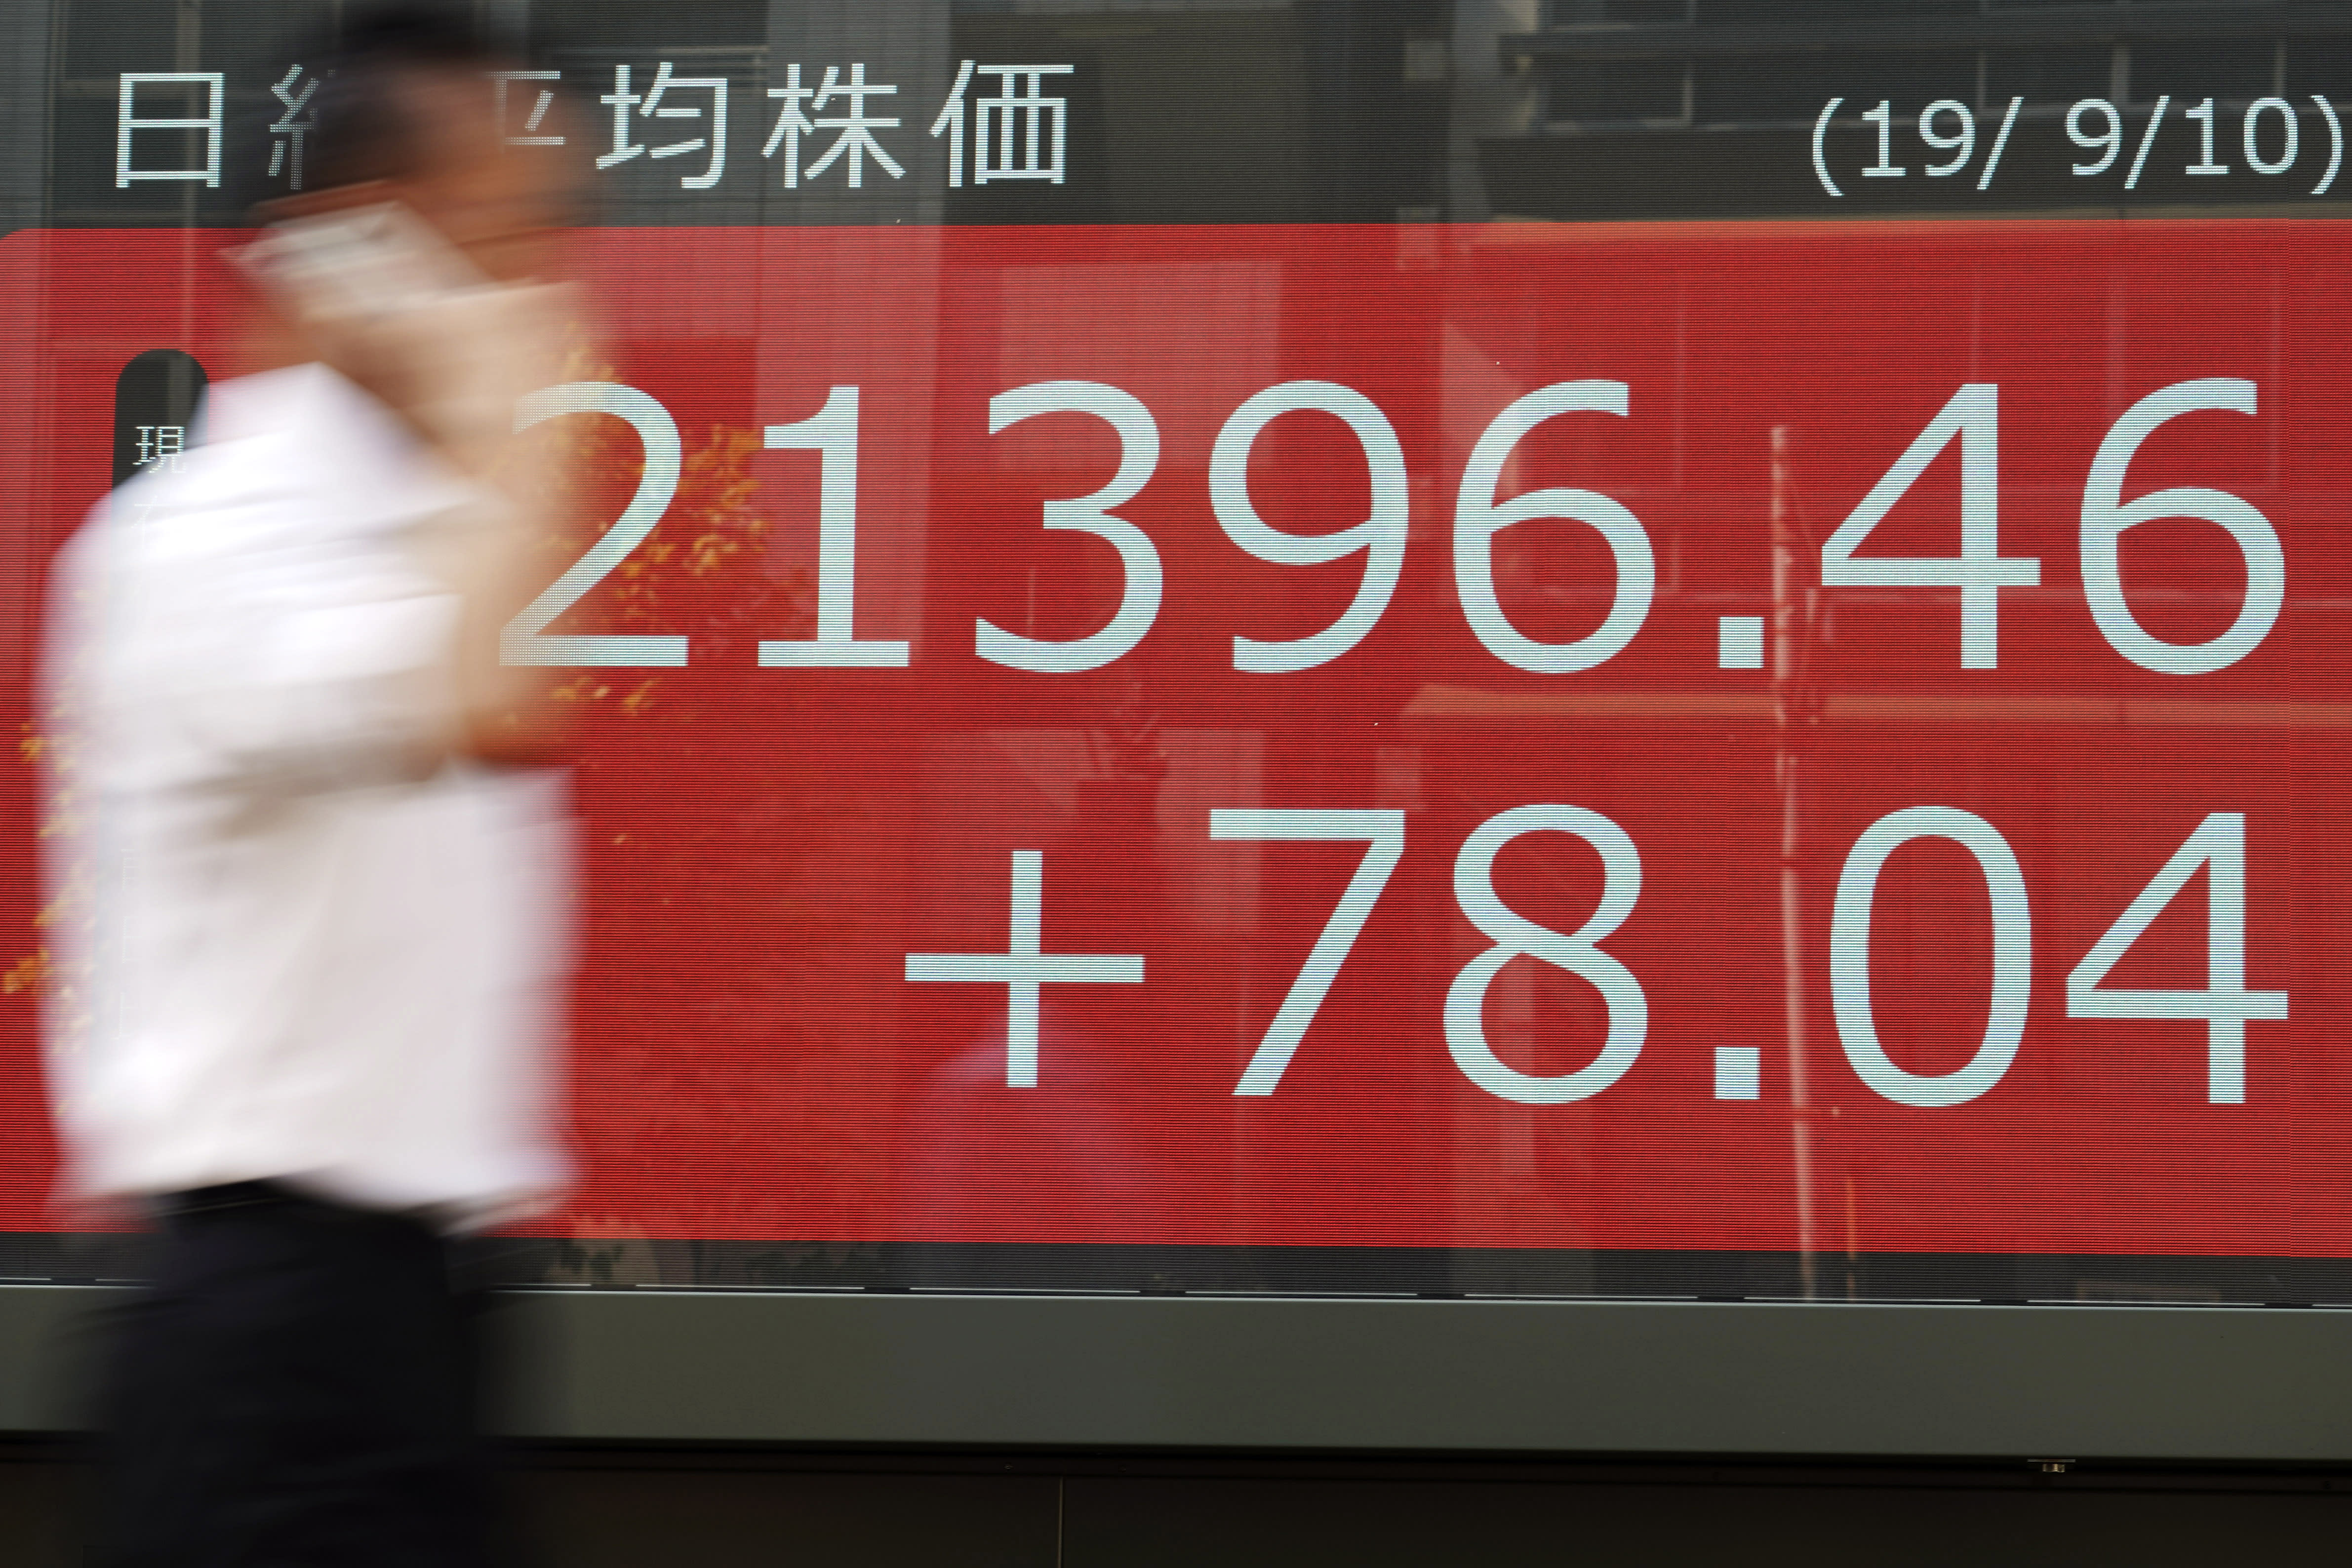 A man walks past an electronic stock board showing Japan's Nikkei 225 index at a securities firm in Tokyo Tuesday, Sept. 10, 2019. Asian shares were mixed Tuesday after a day of listless trading on Wall Street, as investors awaited signs on global interest rates. (AP Photo/Eugene Hoshiko)